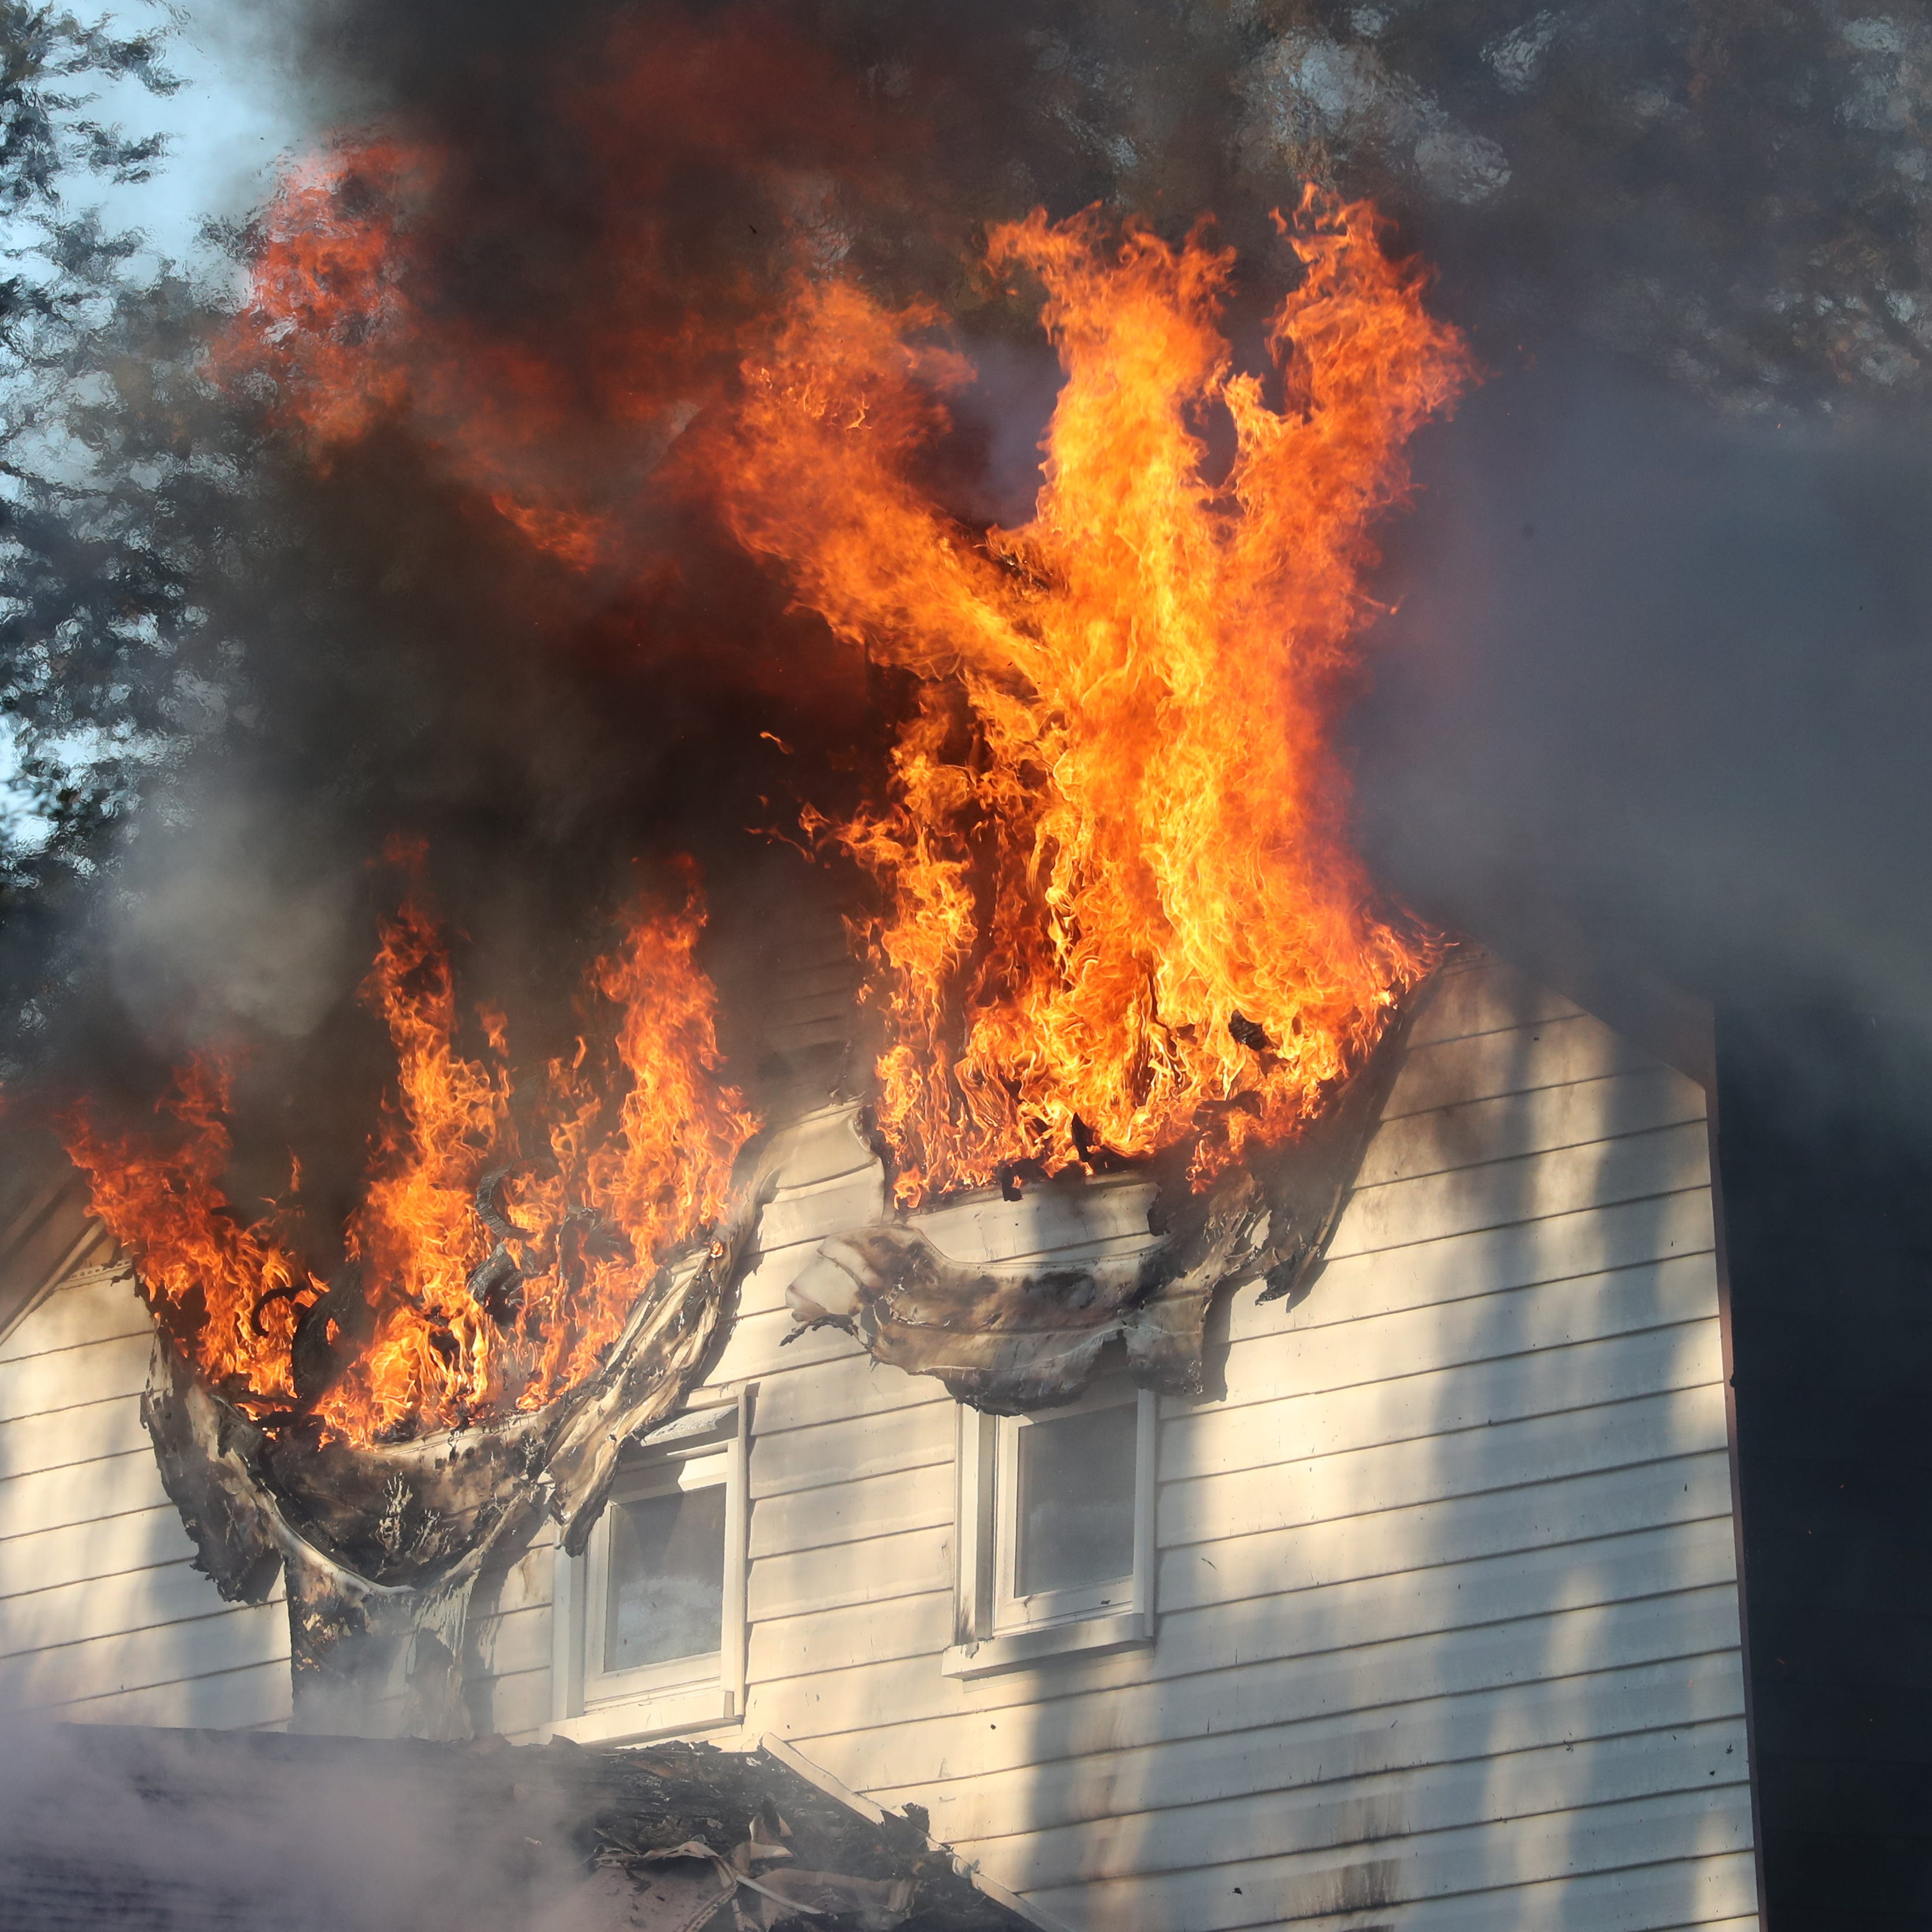 Firefighters battle blaze in Blauvelt